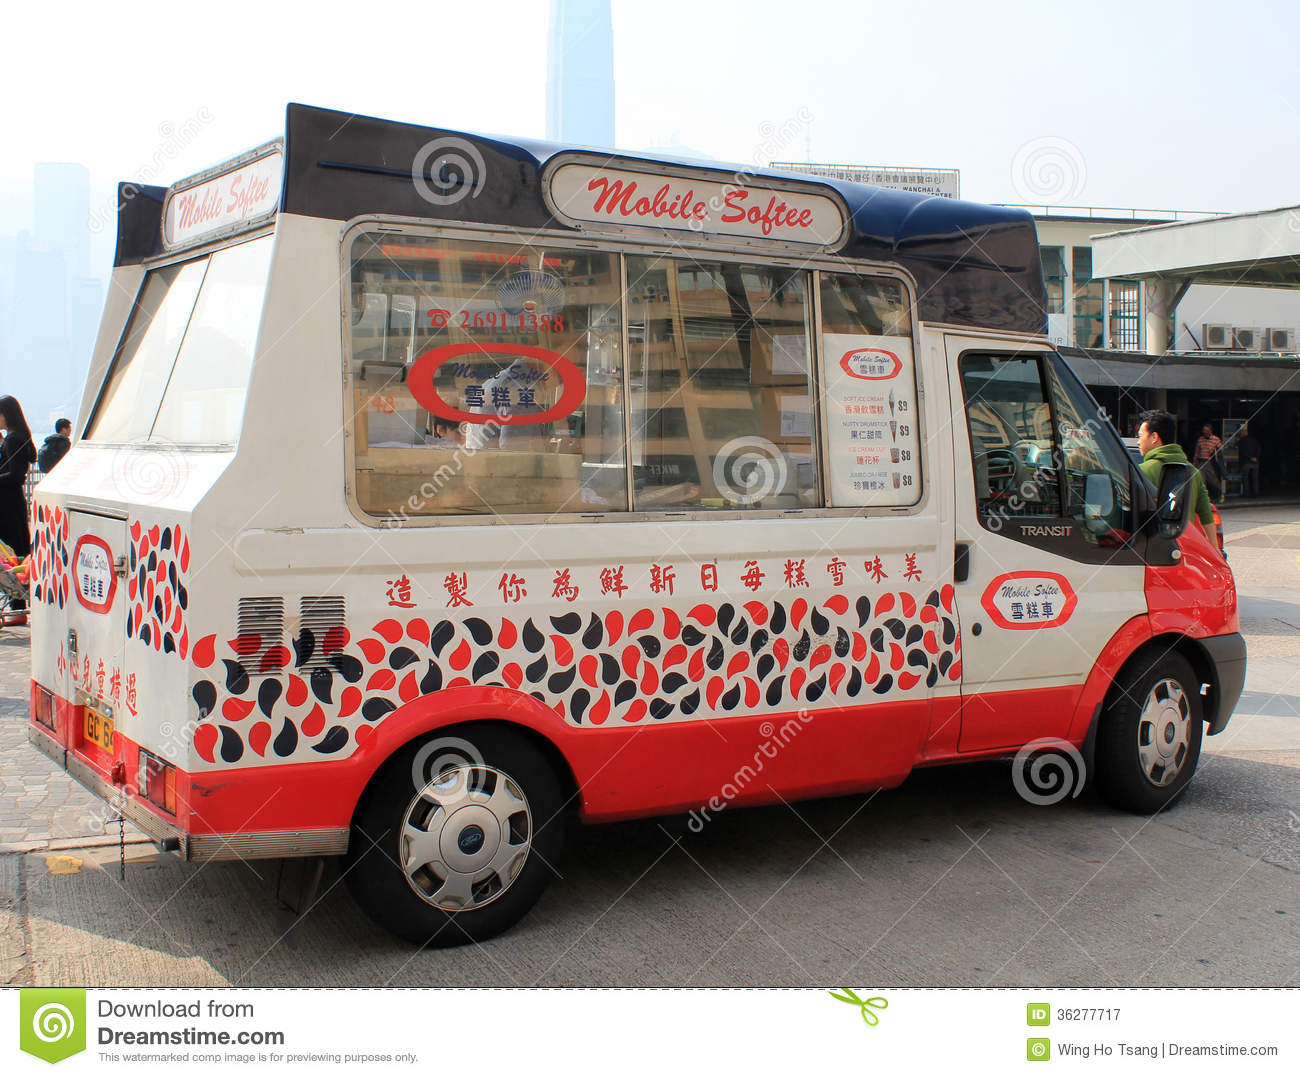 How to Build a Food Truck Yourself – A Simple Guide